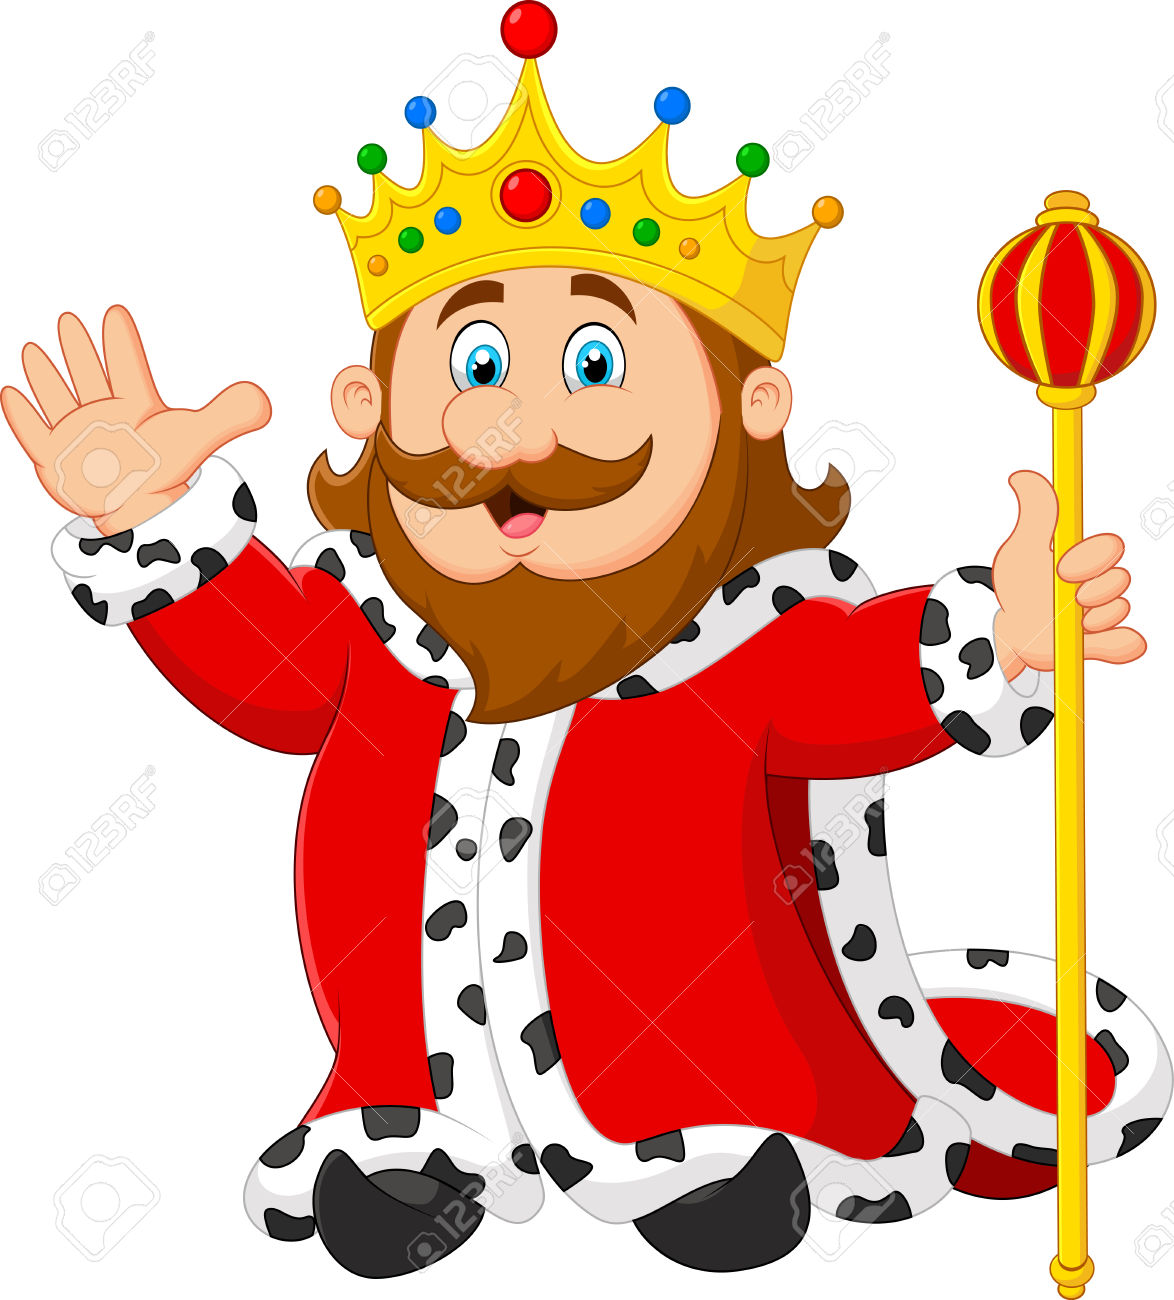 jpg royalty free library King clipart. Collection of free download